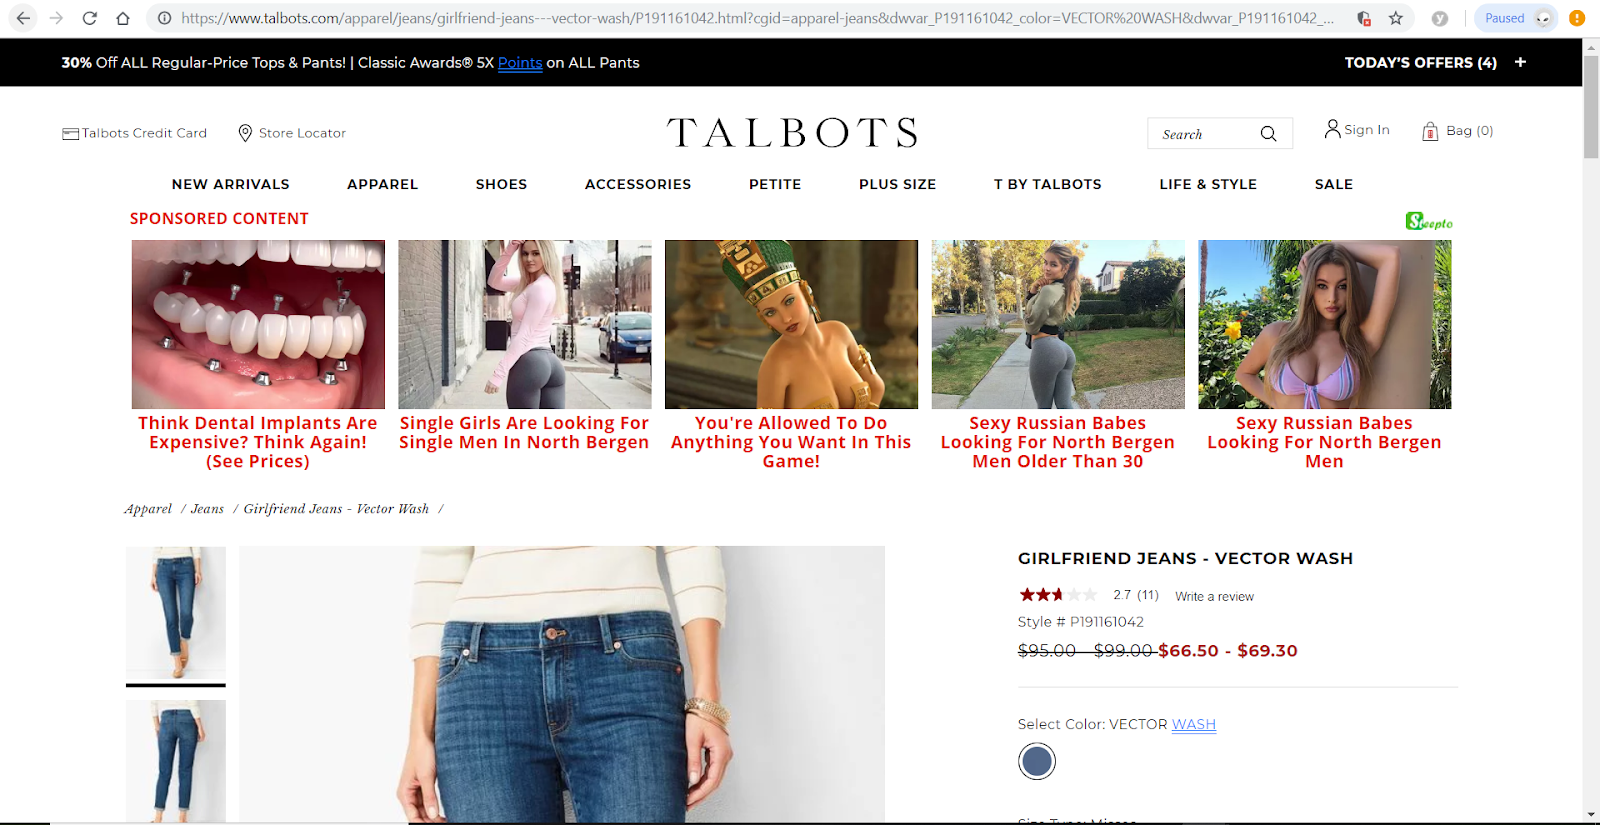 talbots browser injected ads adult content